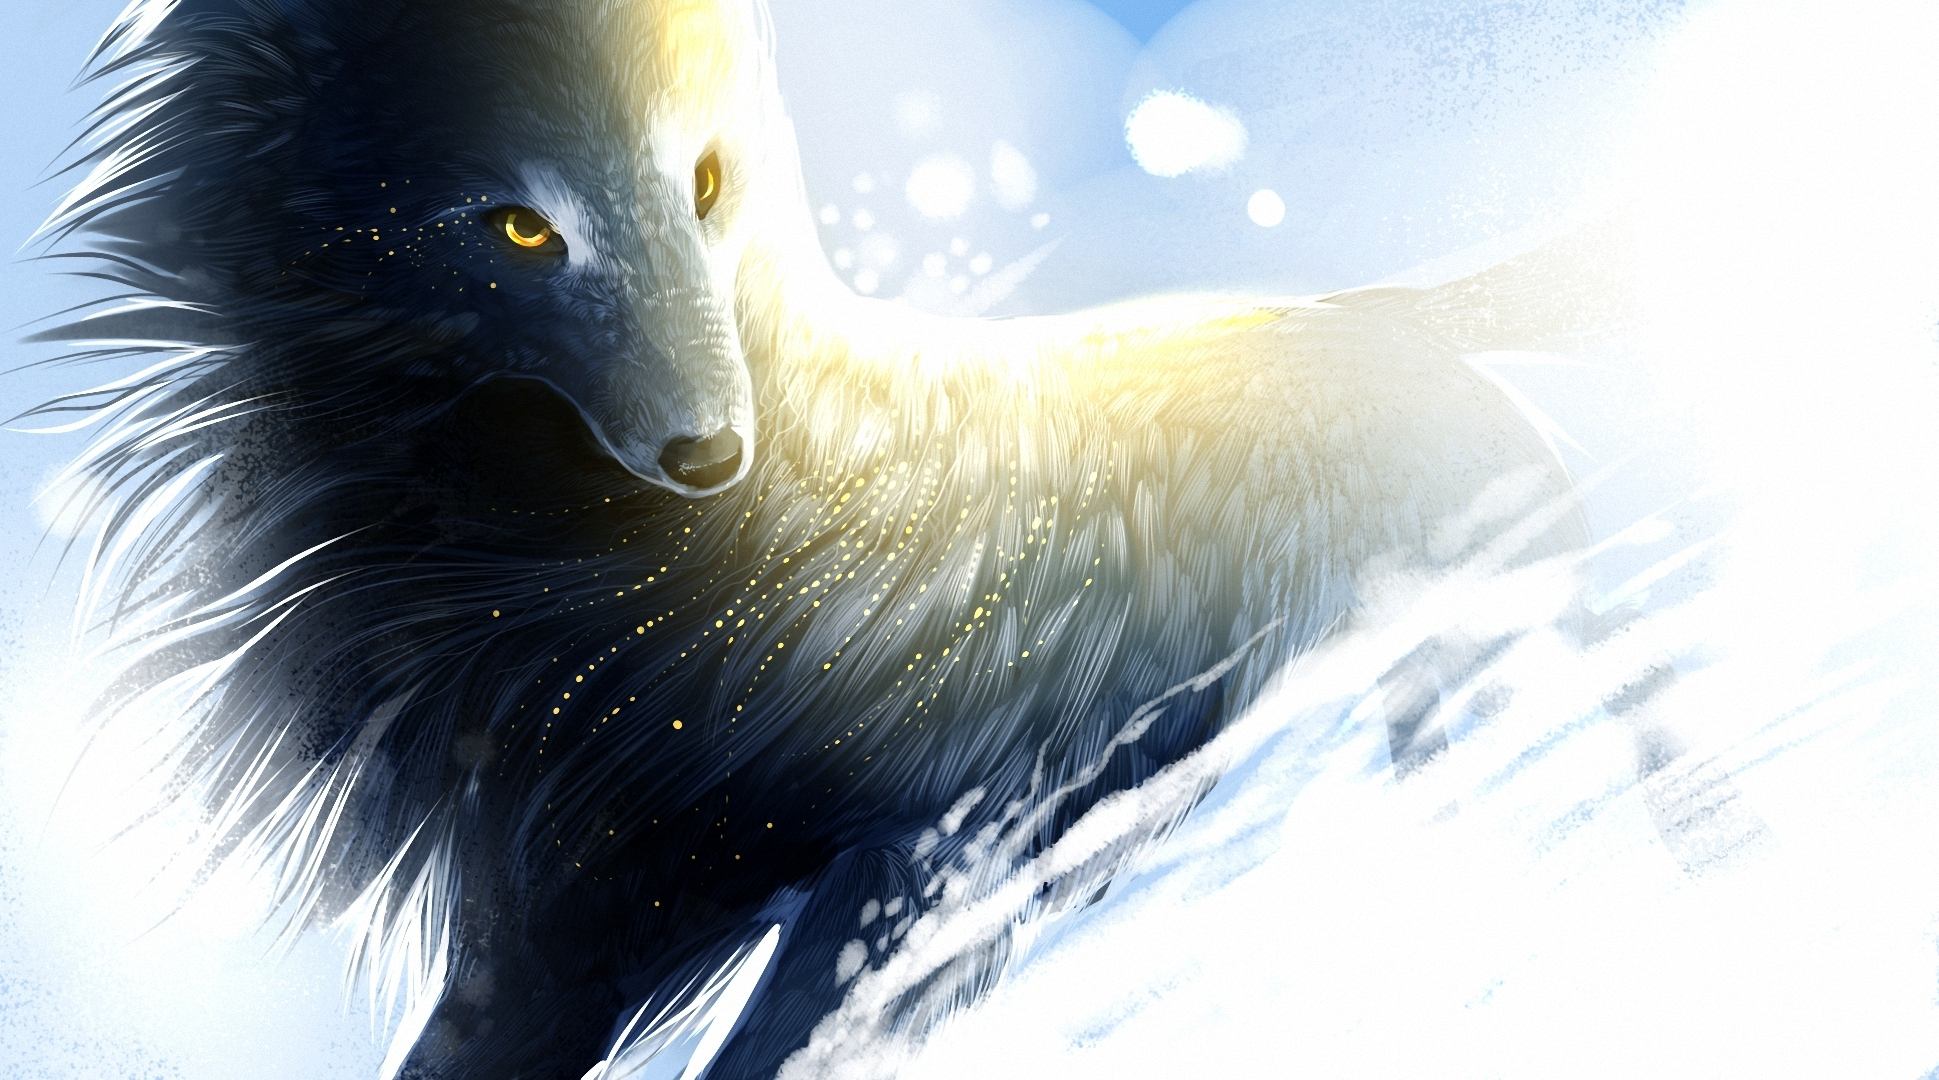 Magic wolf wallpapers - photo#41